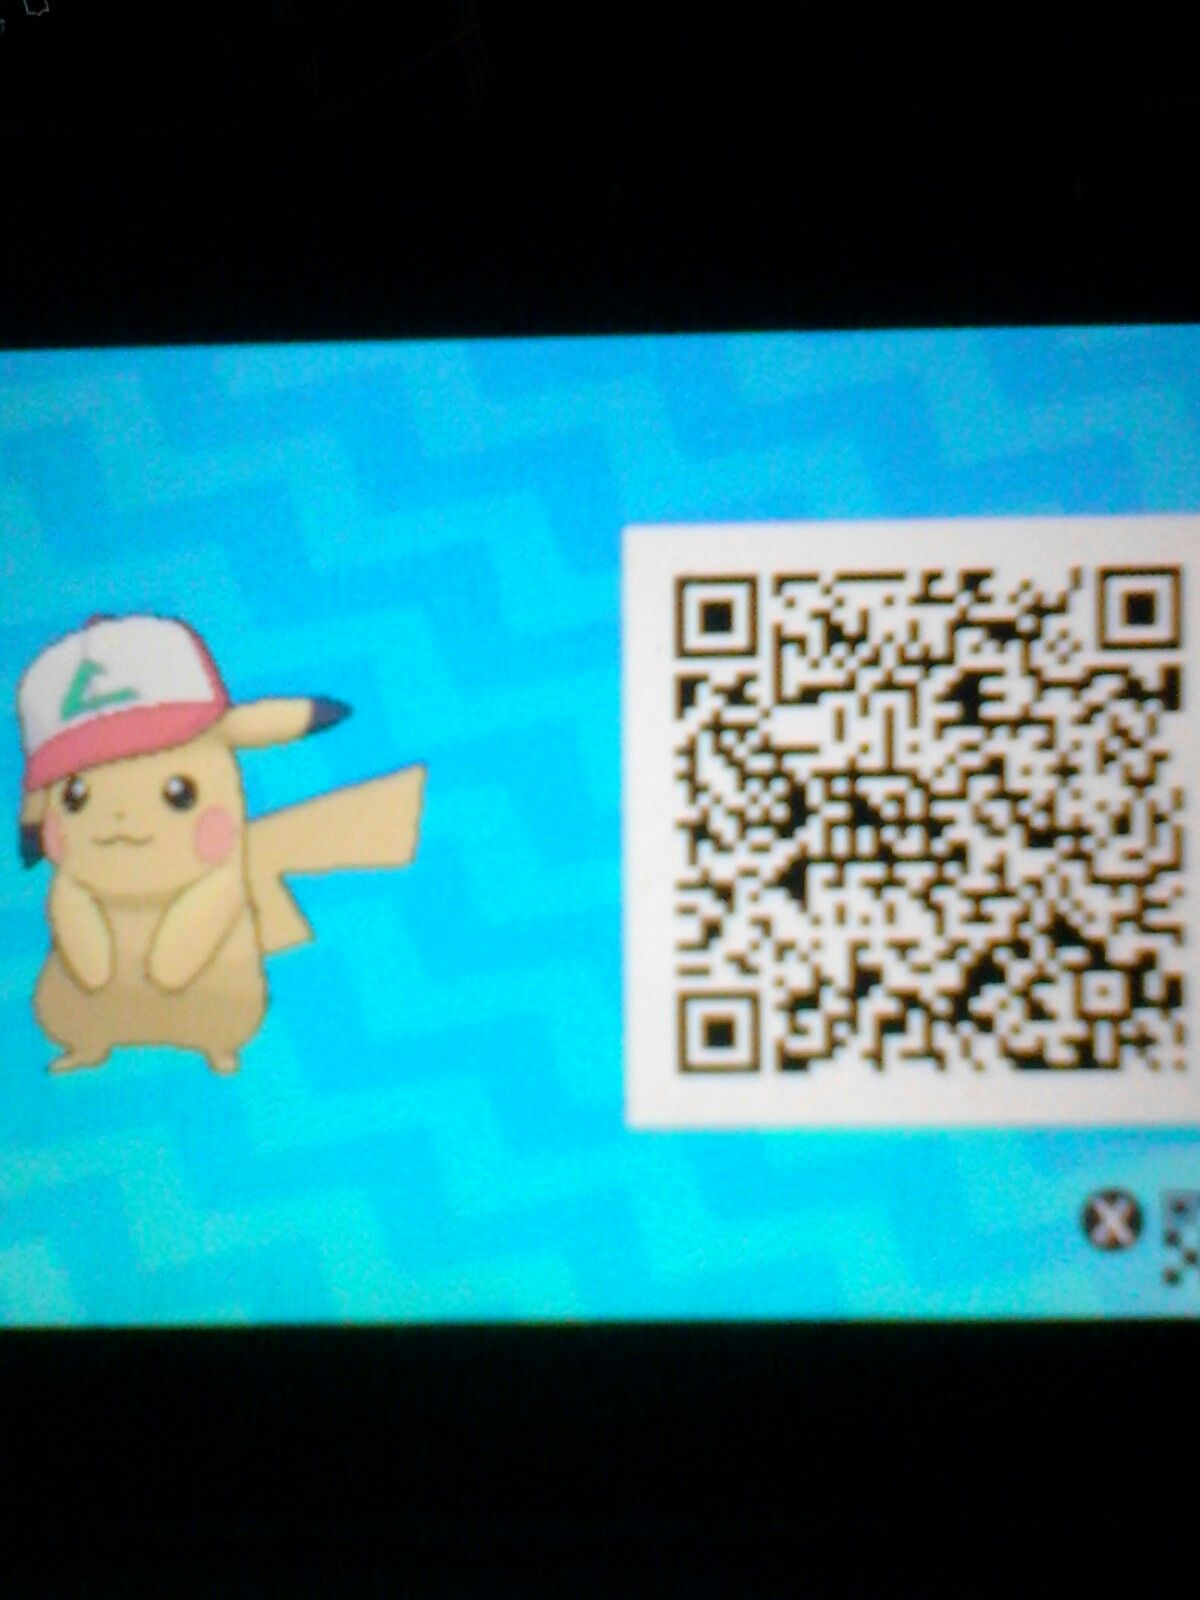 Well The Qr Code Is Just Pikachu Sadly But Here S The Ash Pikachu I